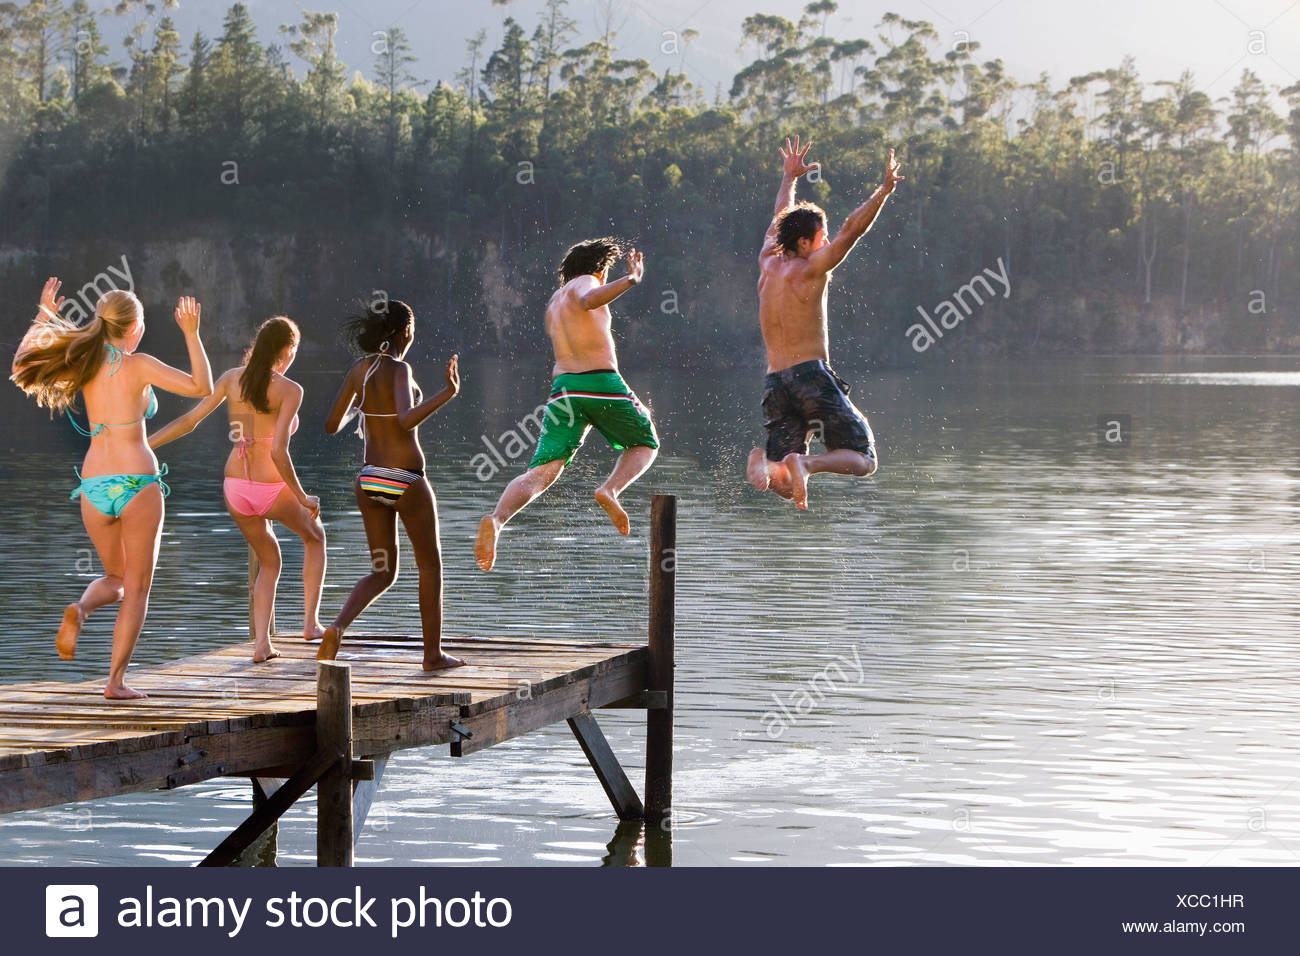 Five young adults in swimwear jumping side by side from jetty into lake rear view - Stock Image